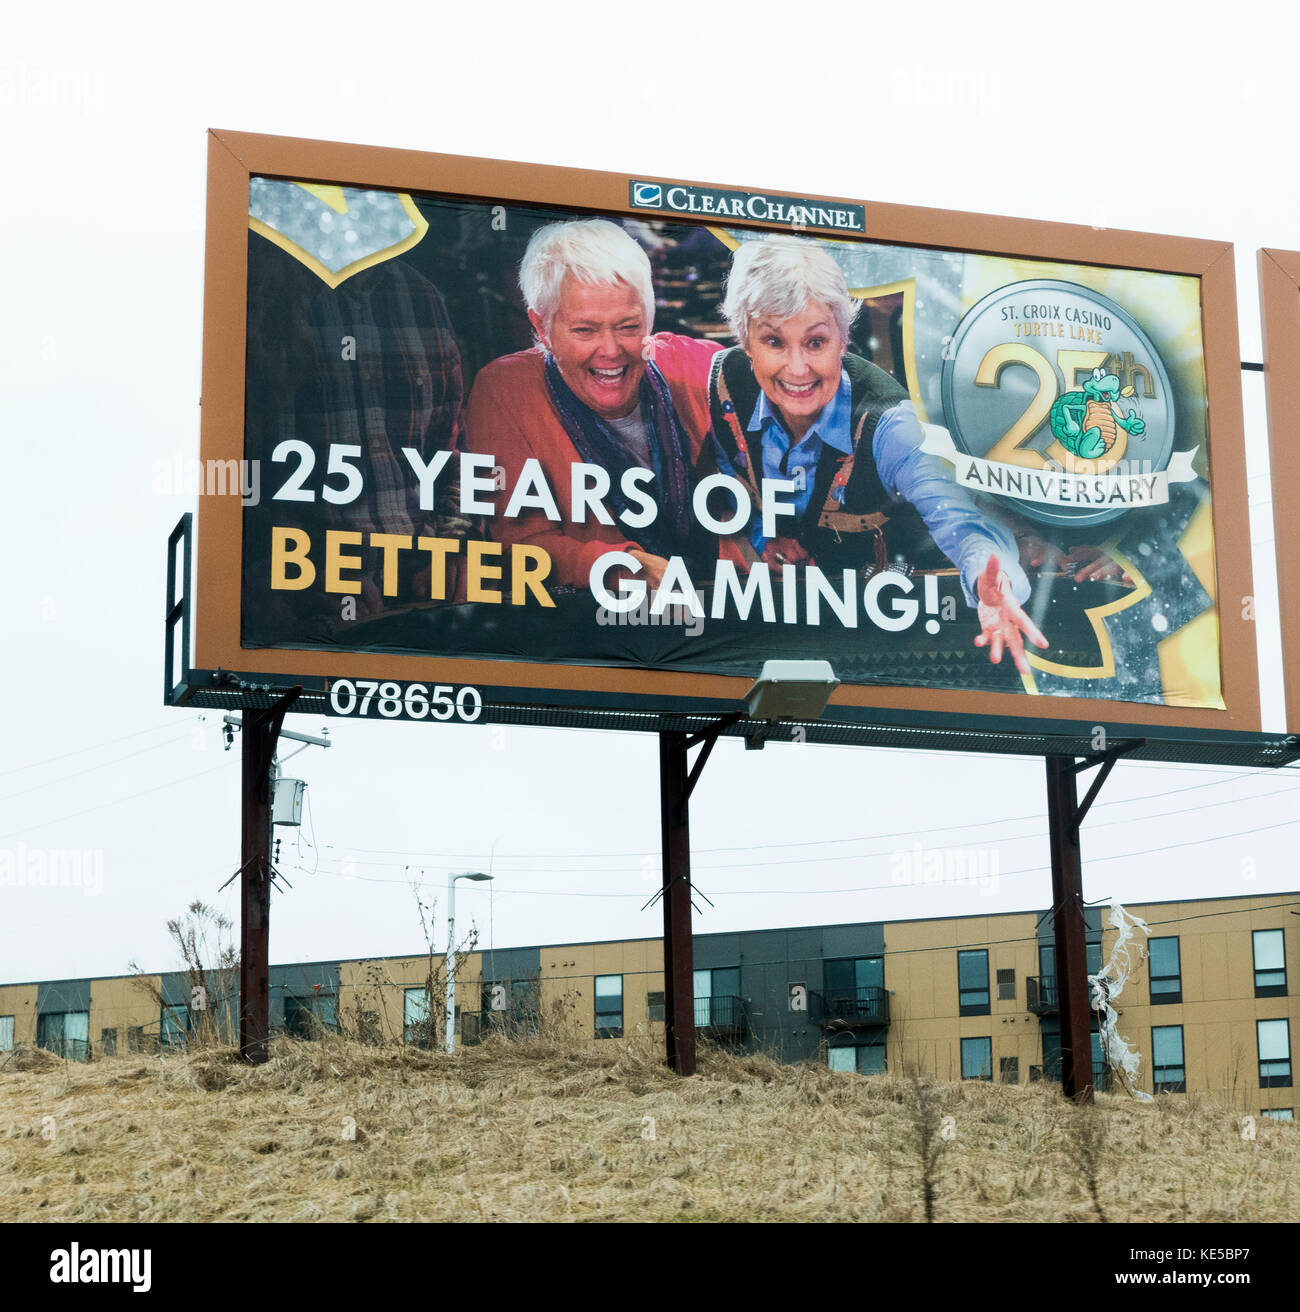 Two older senior woman pictured on an outdoor advertising billboard having fun gambling at the Wisconsin St Croix - Stock Image